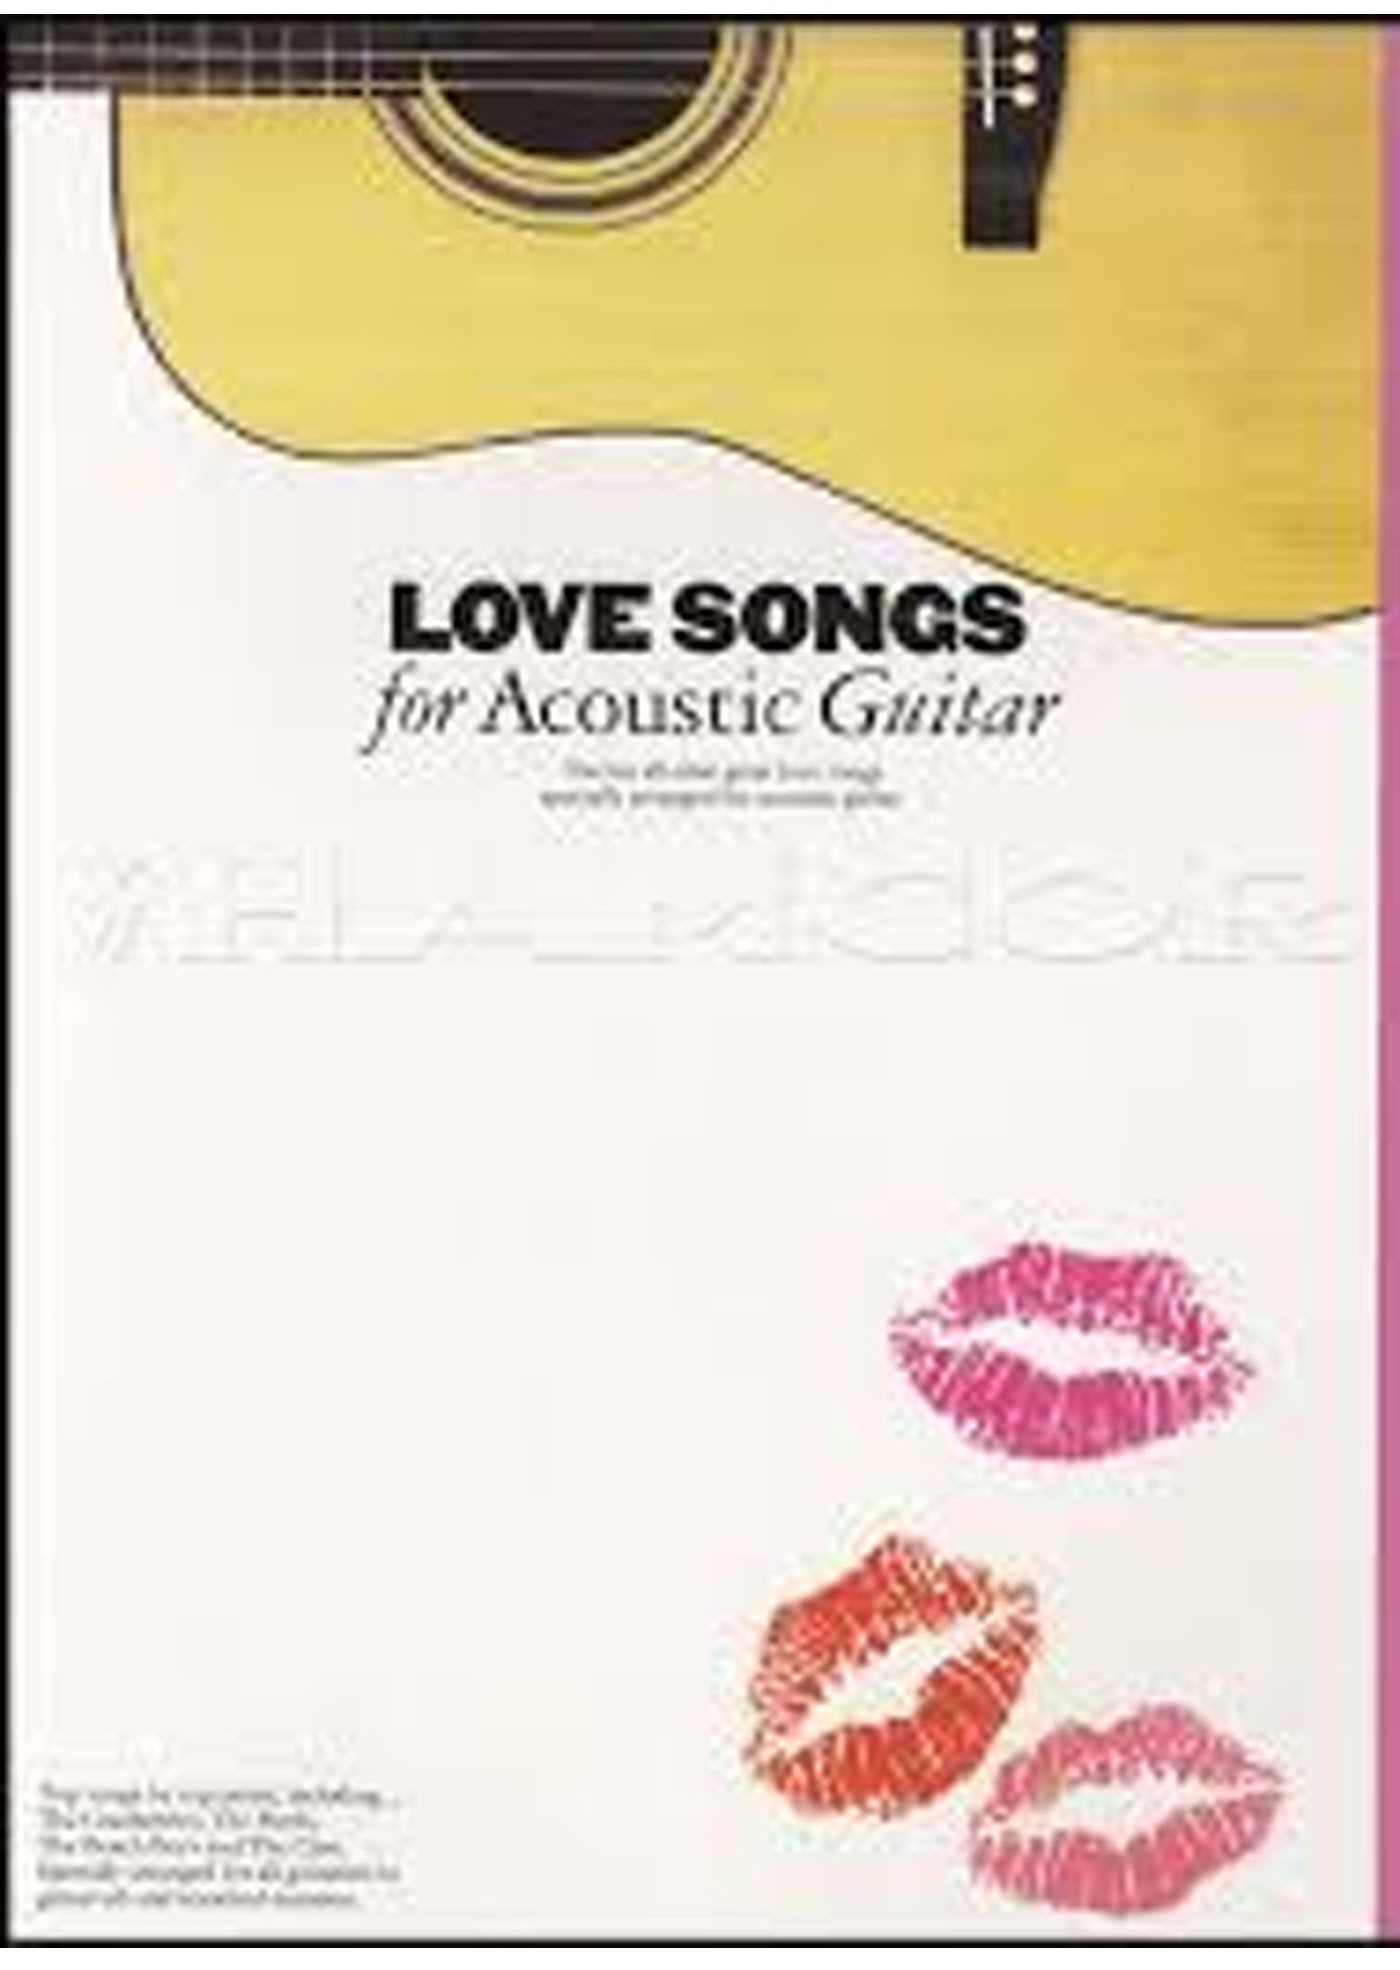 Love Songs For Acoustic Guitar Book Notes Tab Chords The Cure Sting